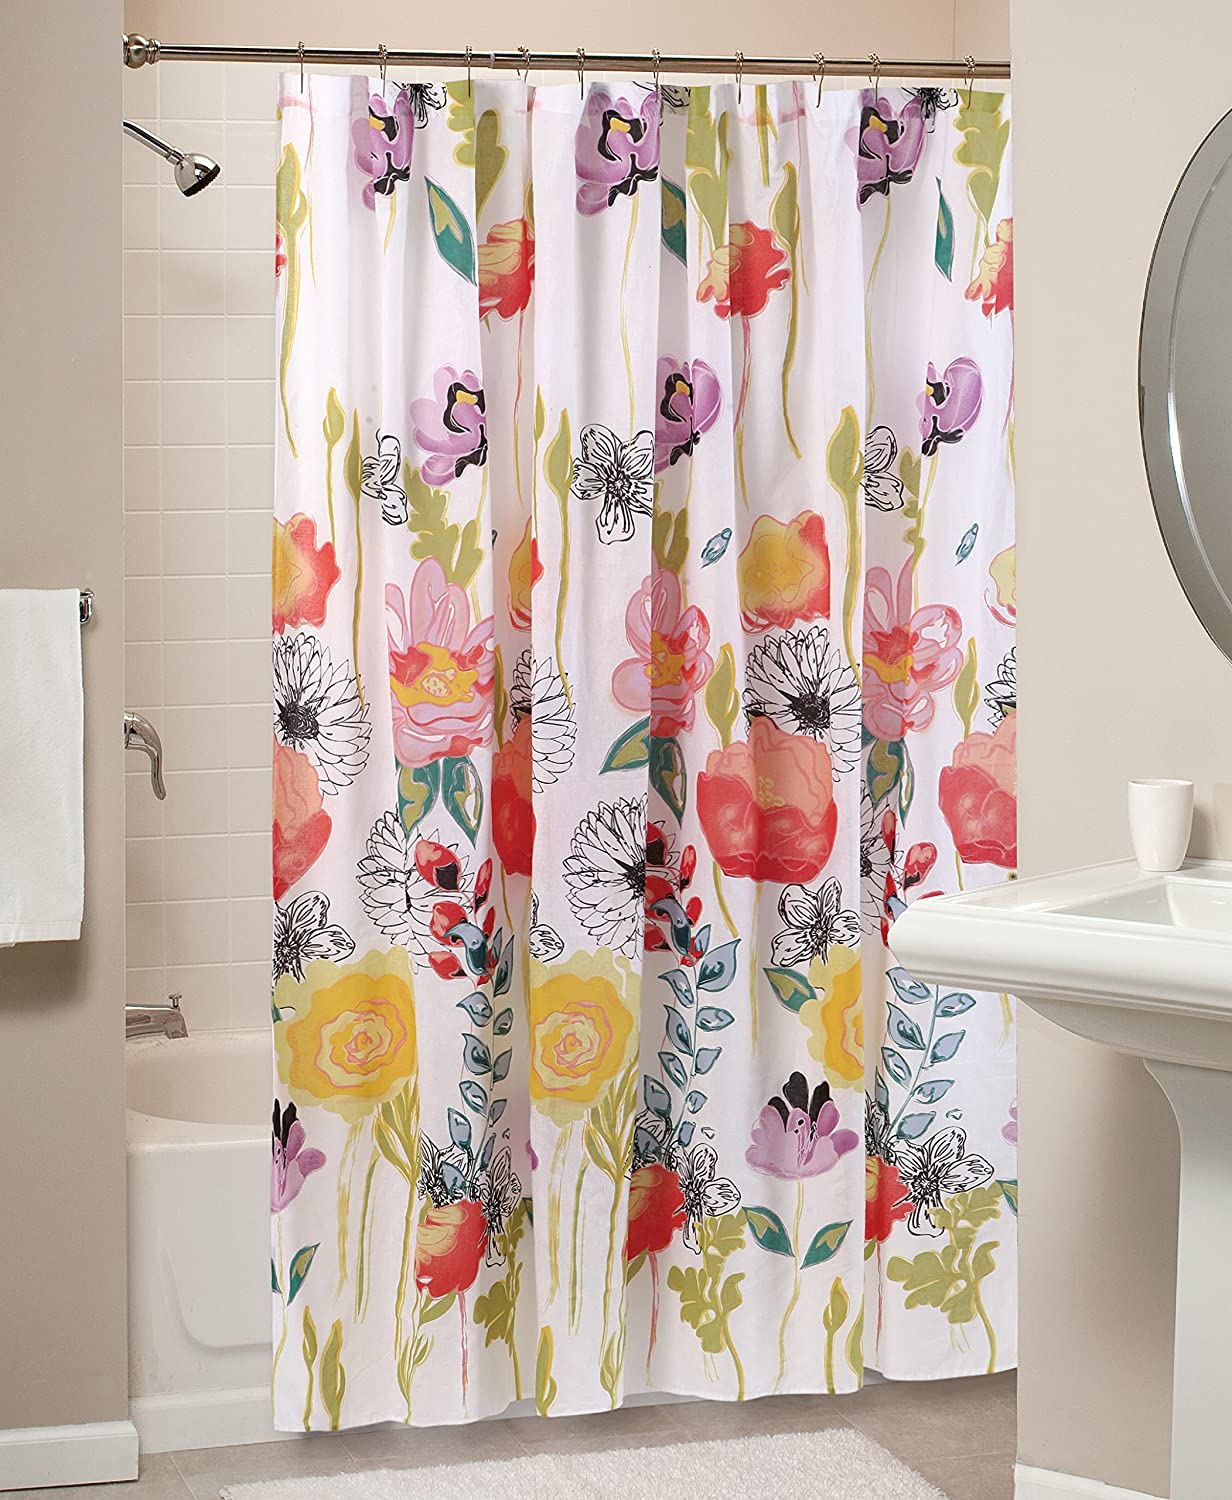 Greenland Home Watercolor Dream Shower Curtain 72 X 72 Inch White Home Kitchen